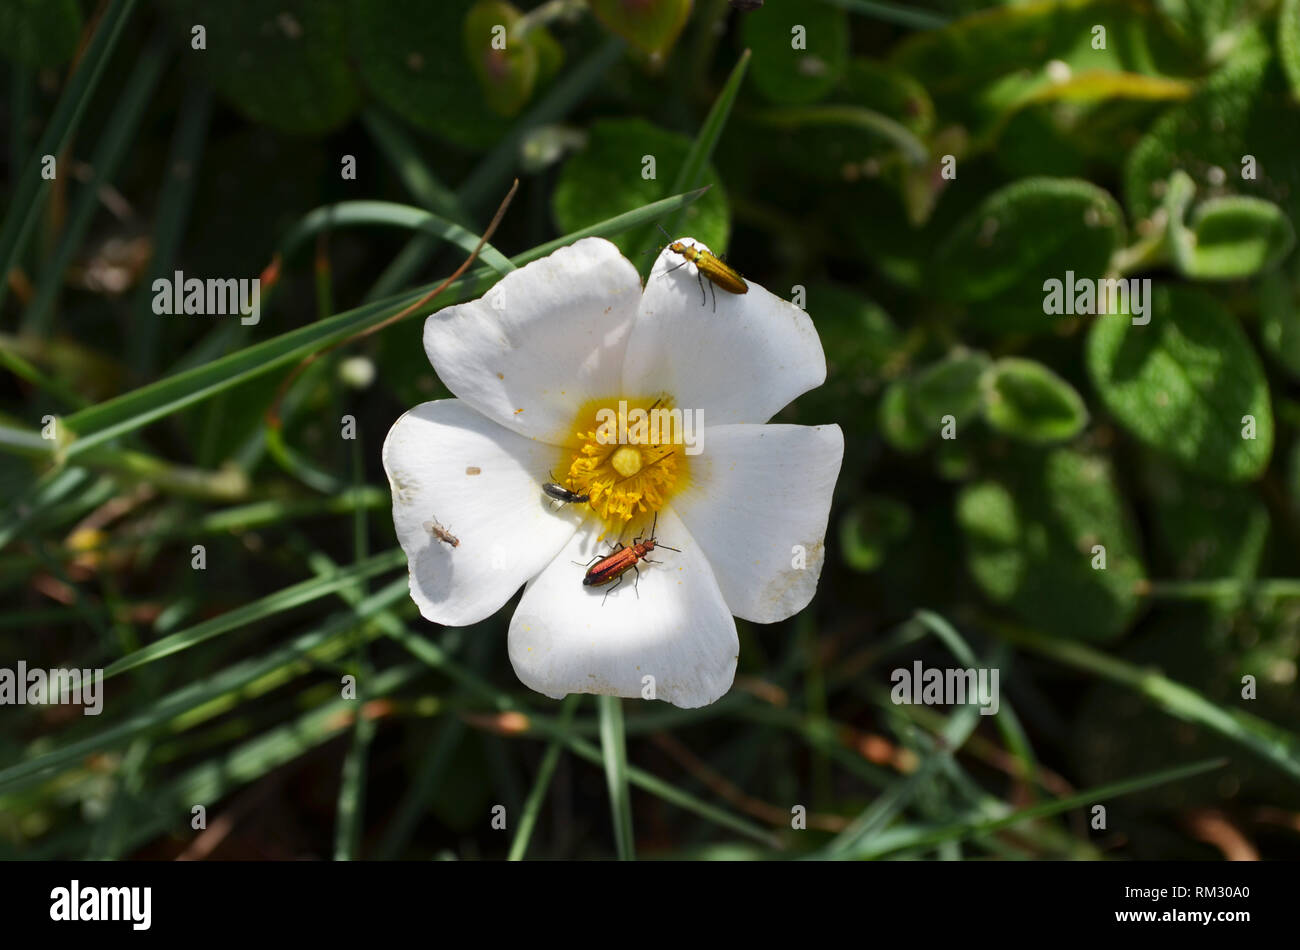 Beetles and fly on flower, southern Portugal - Stock Image